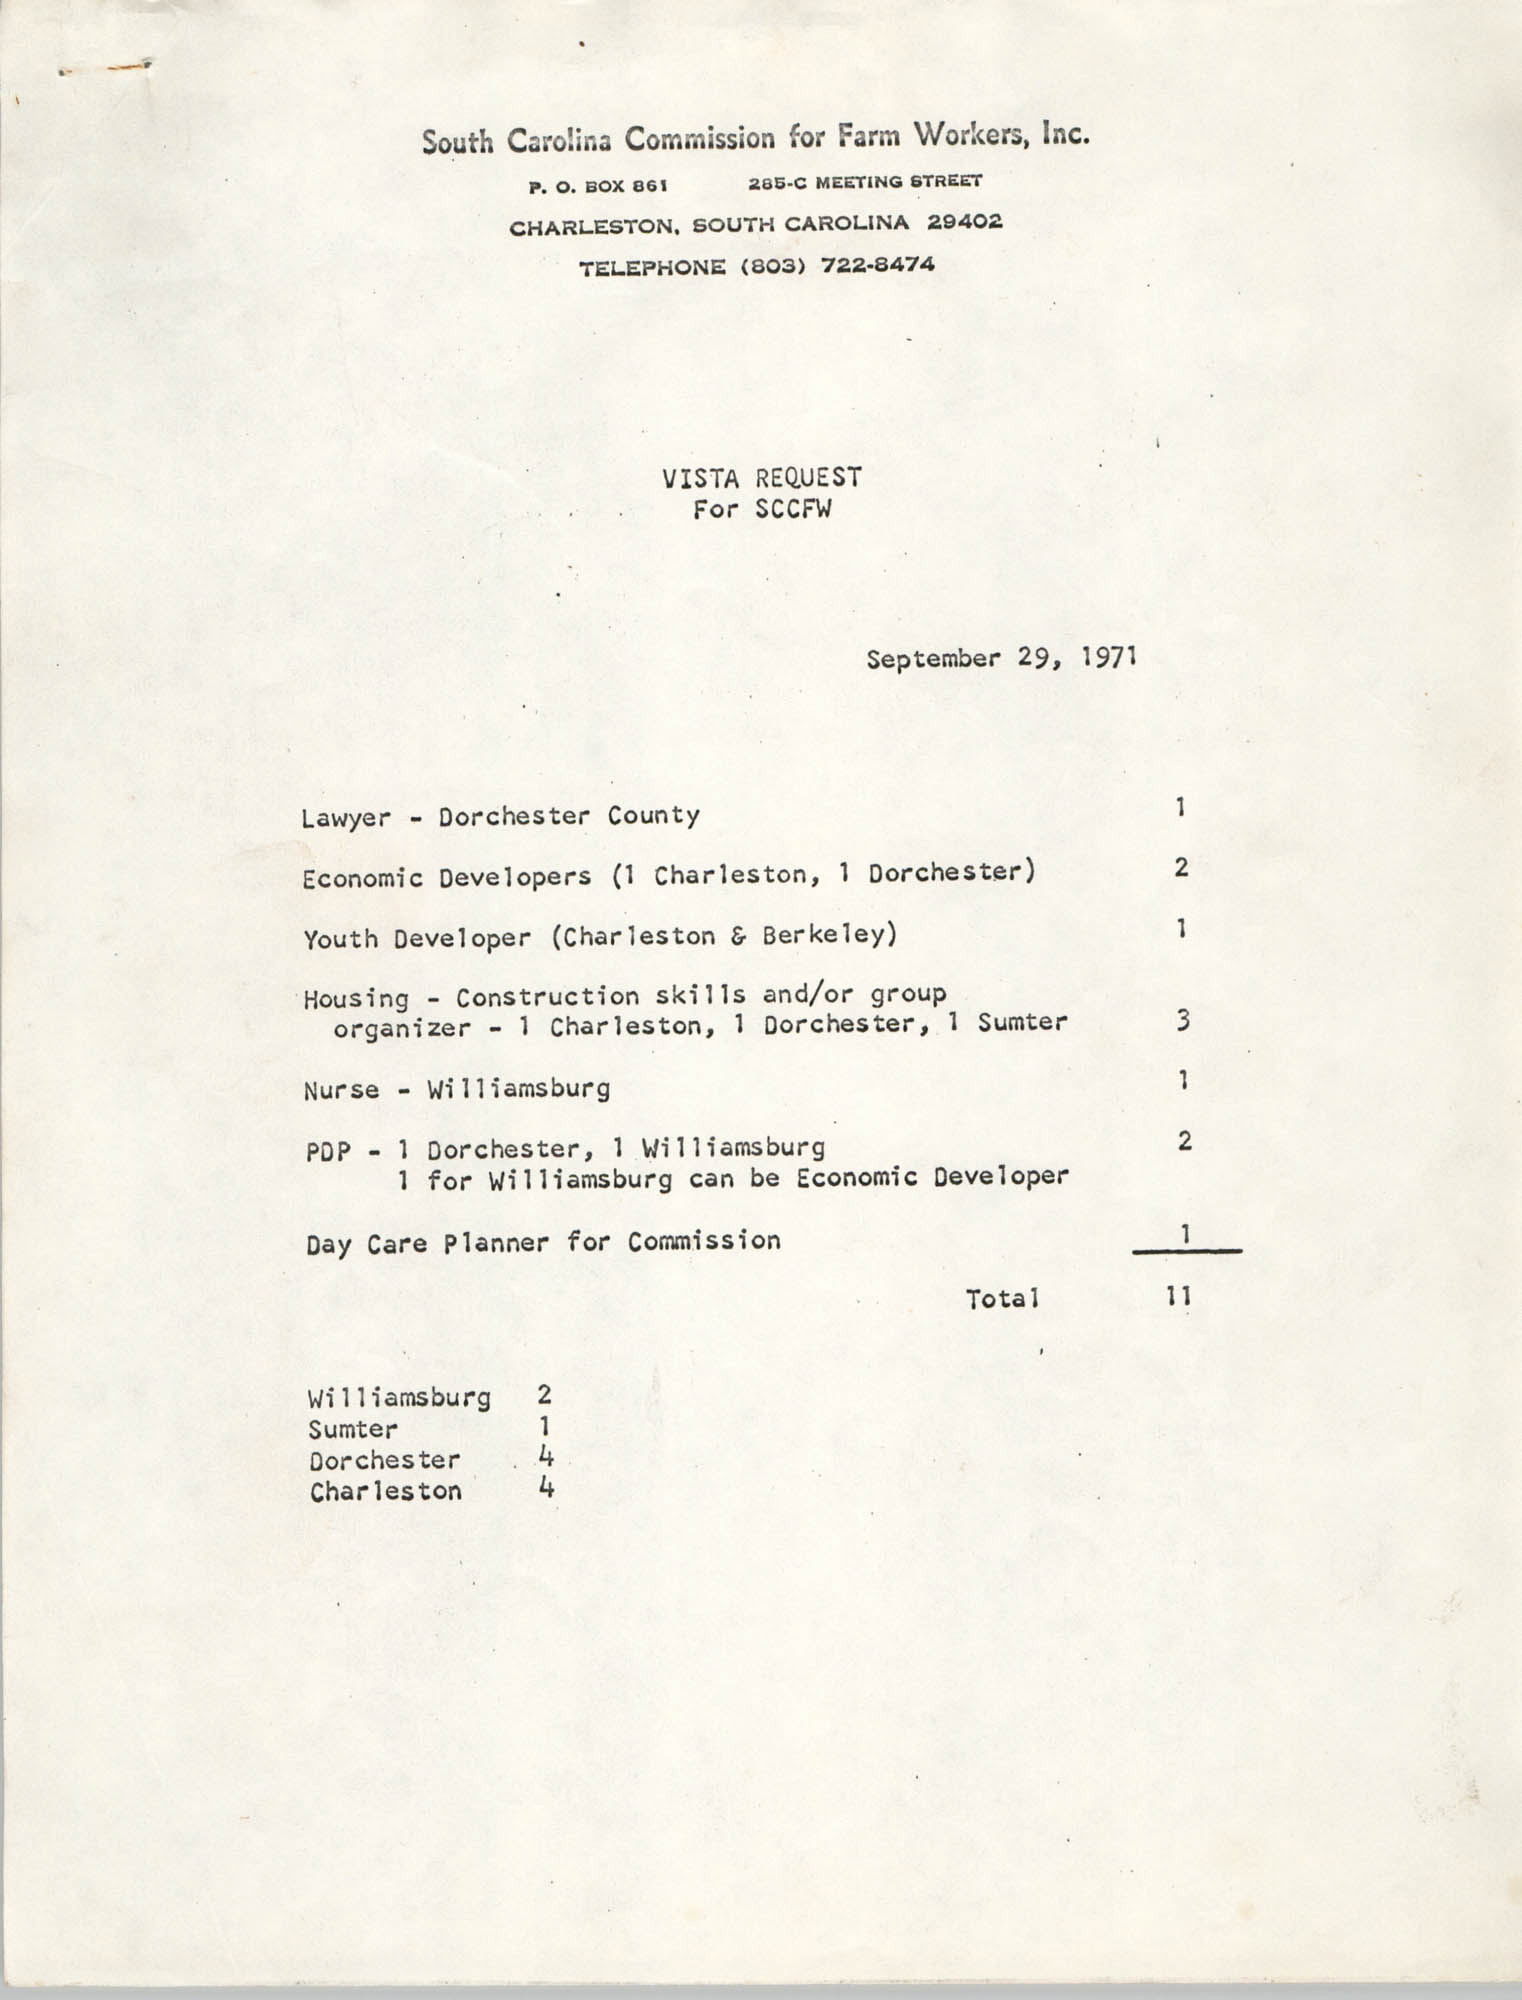 VISTA Request for South Carolina Commission for Farm Workers, September 29, 1971